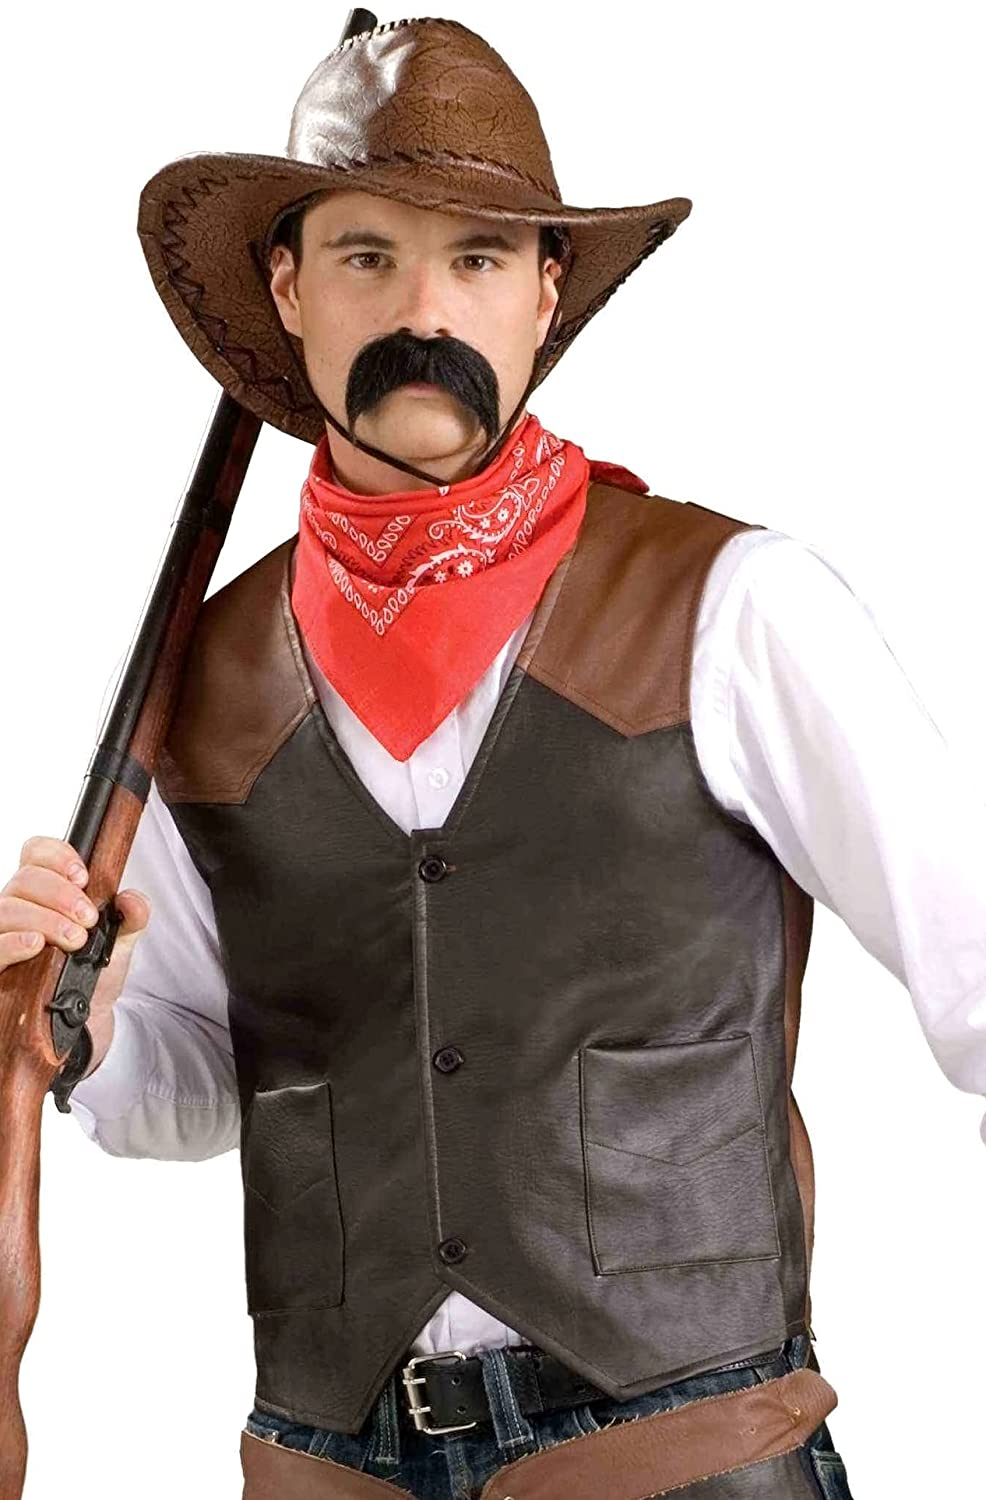 Amazon.com Forum Novelties Cowboy Costume Vest u2013 Adult Economy Standard Toys u0026 Games  sc 1 st  Amazon.com & Amazon.com: Forum Novelties Cowboy Costume Vest u2013 Adult Economy ...